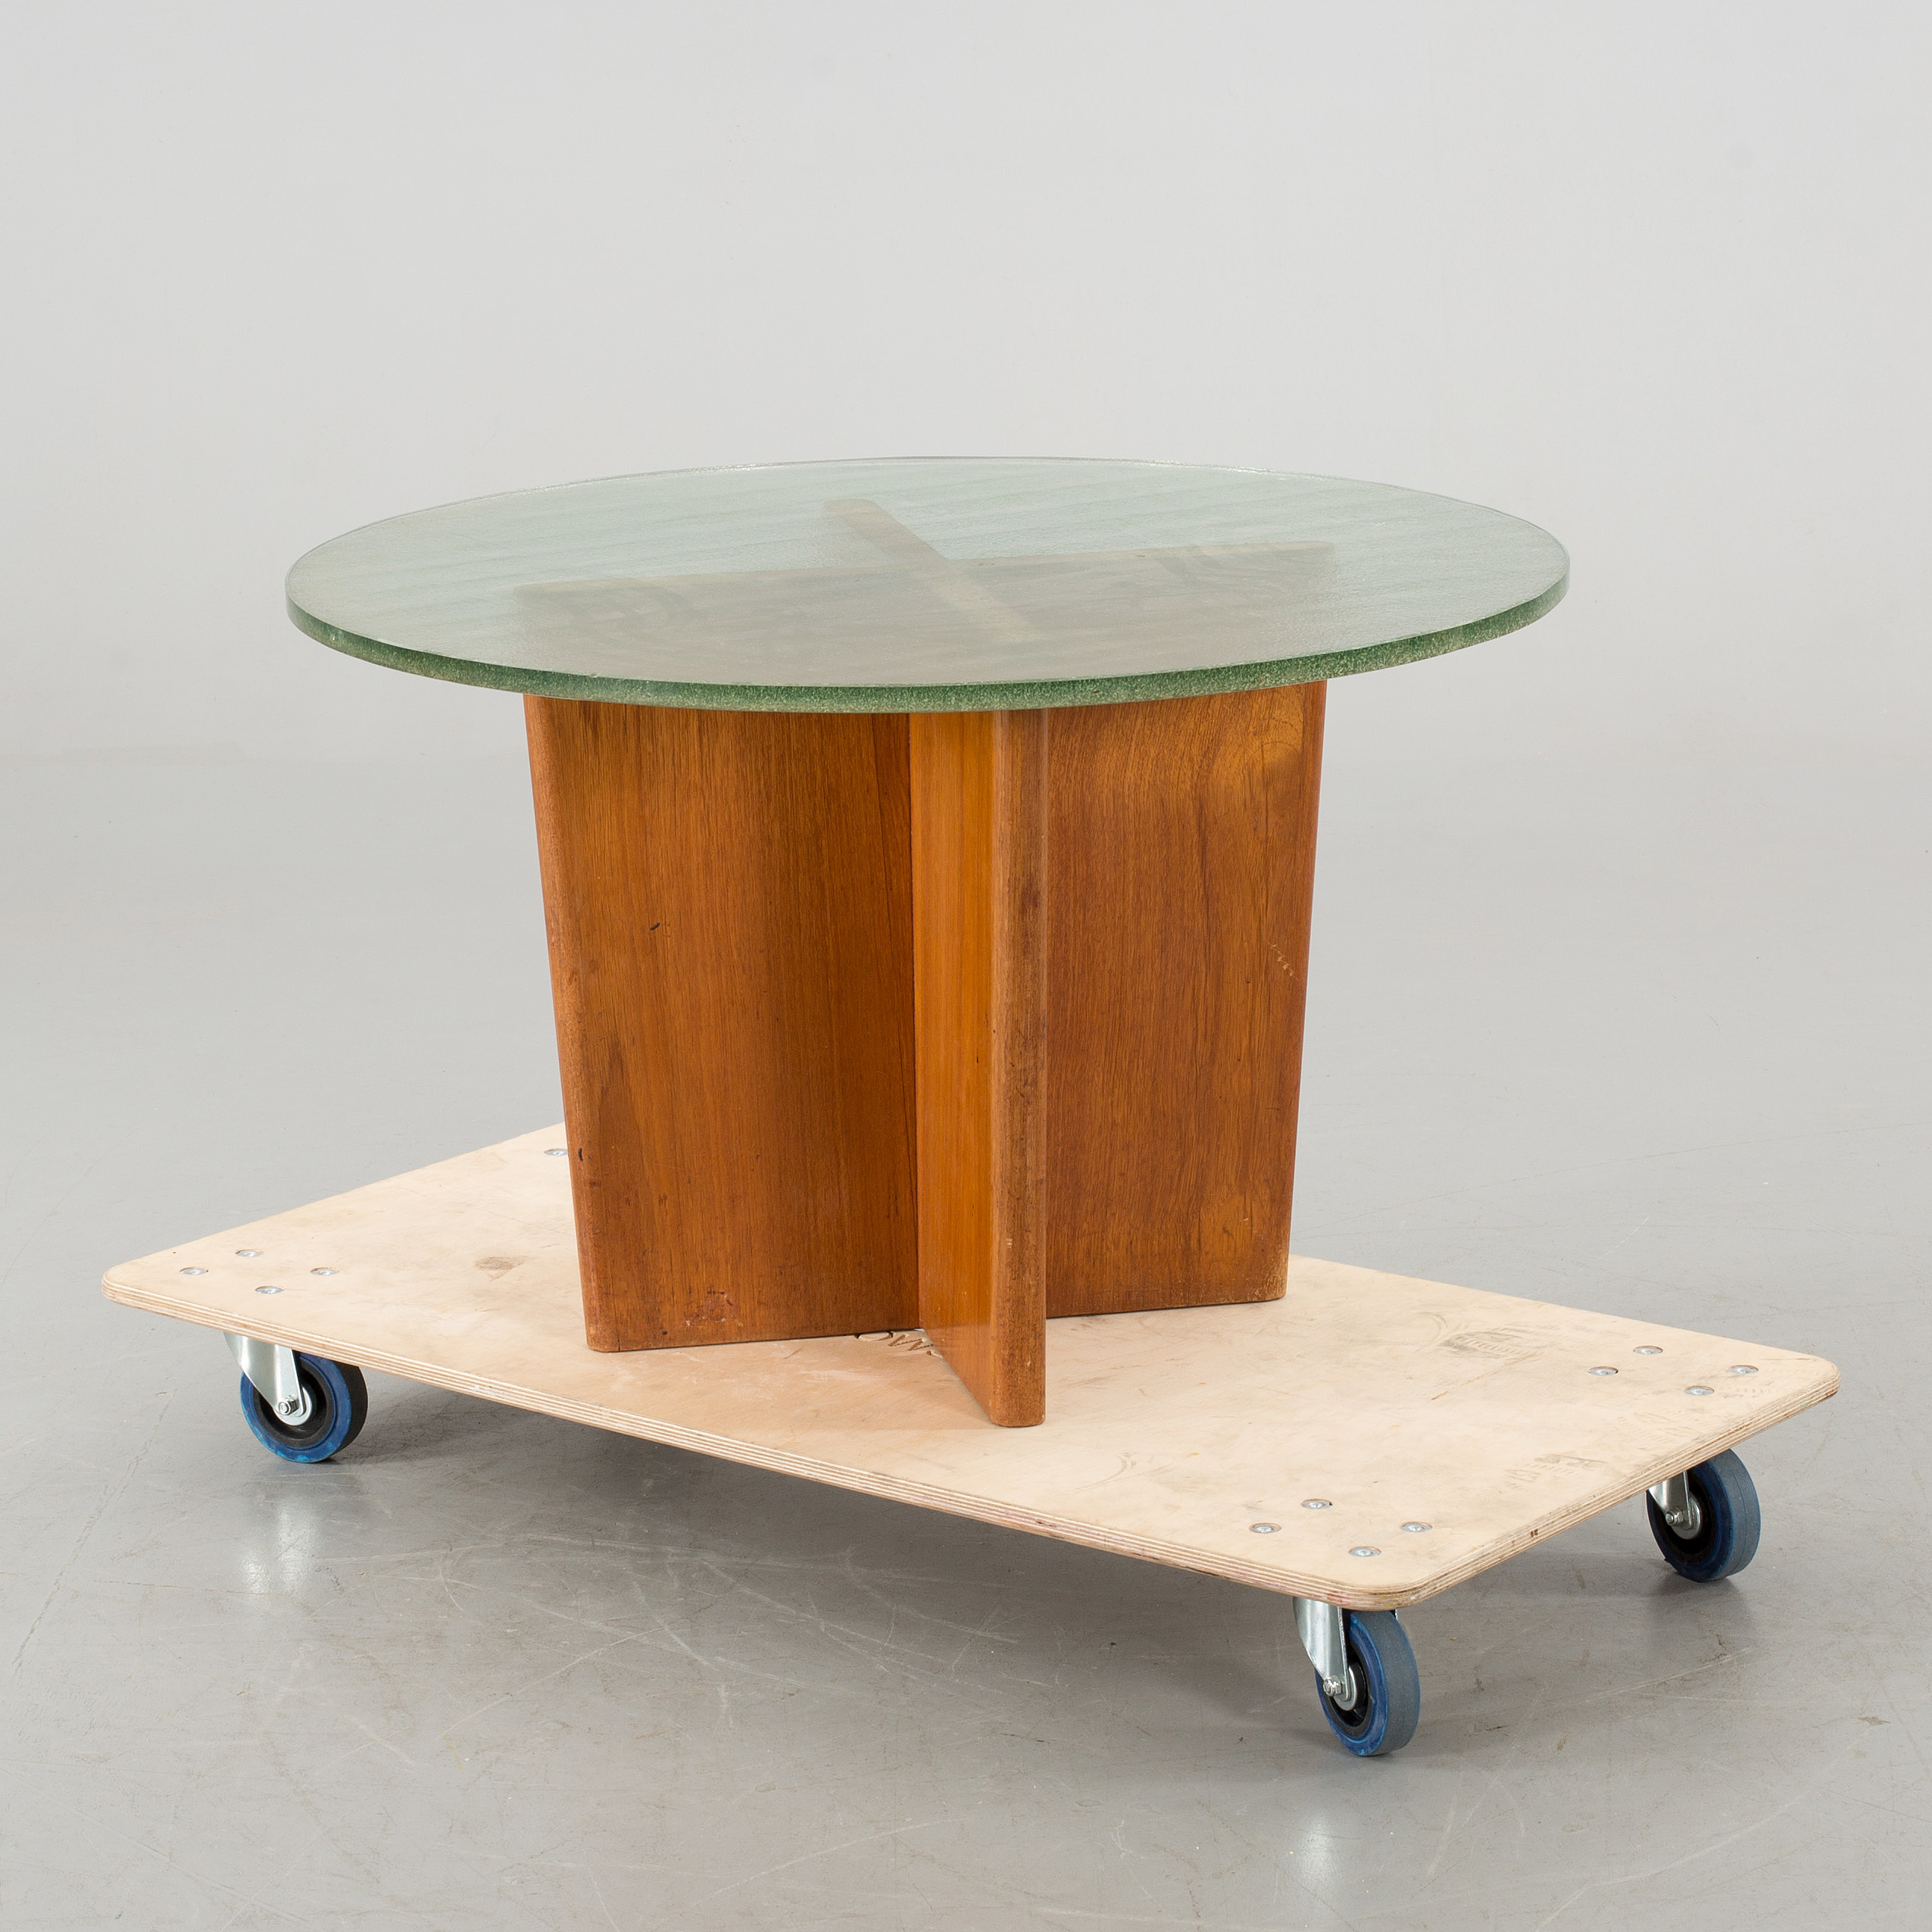 Remarkable Greta Magnusson Grossman A 1930S Sofa Table Bukowskis Gmtry Best Dining Table And Chair Ideas Images Gmtryco